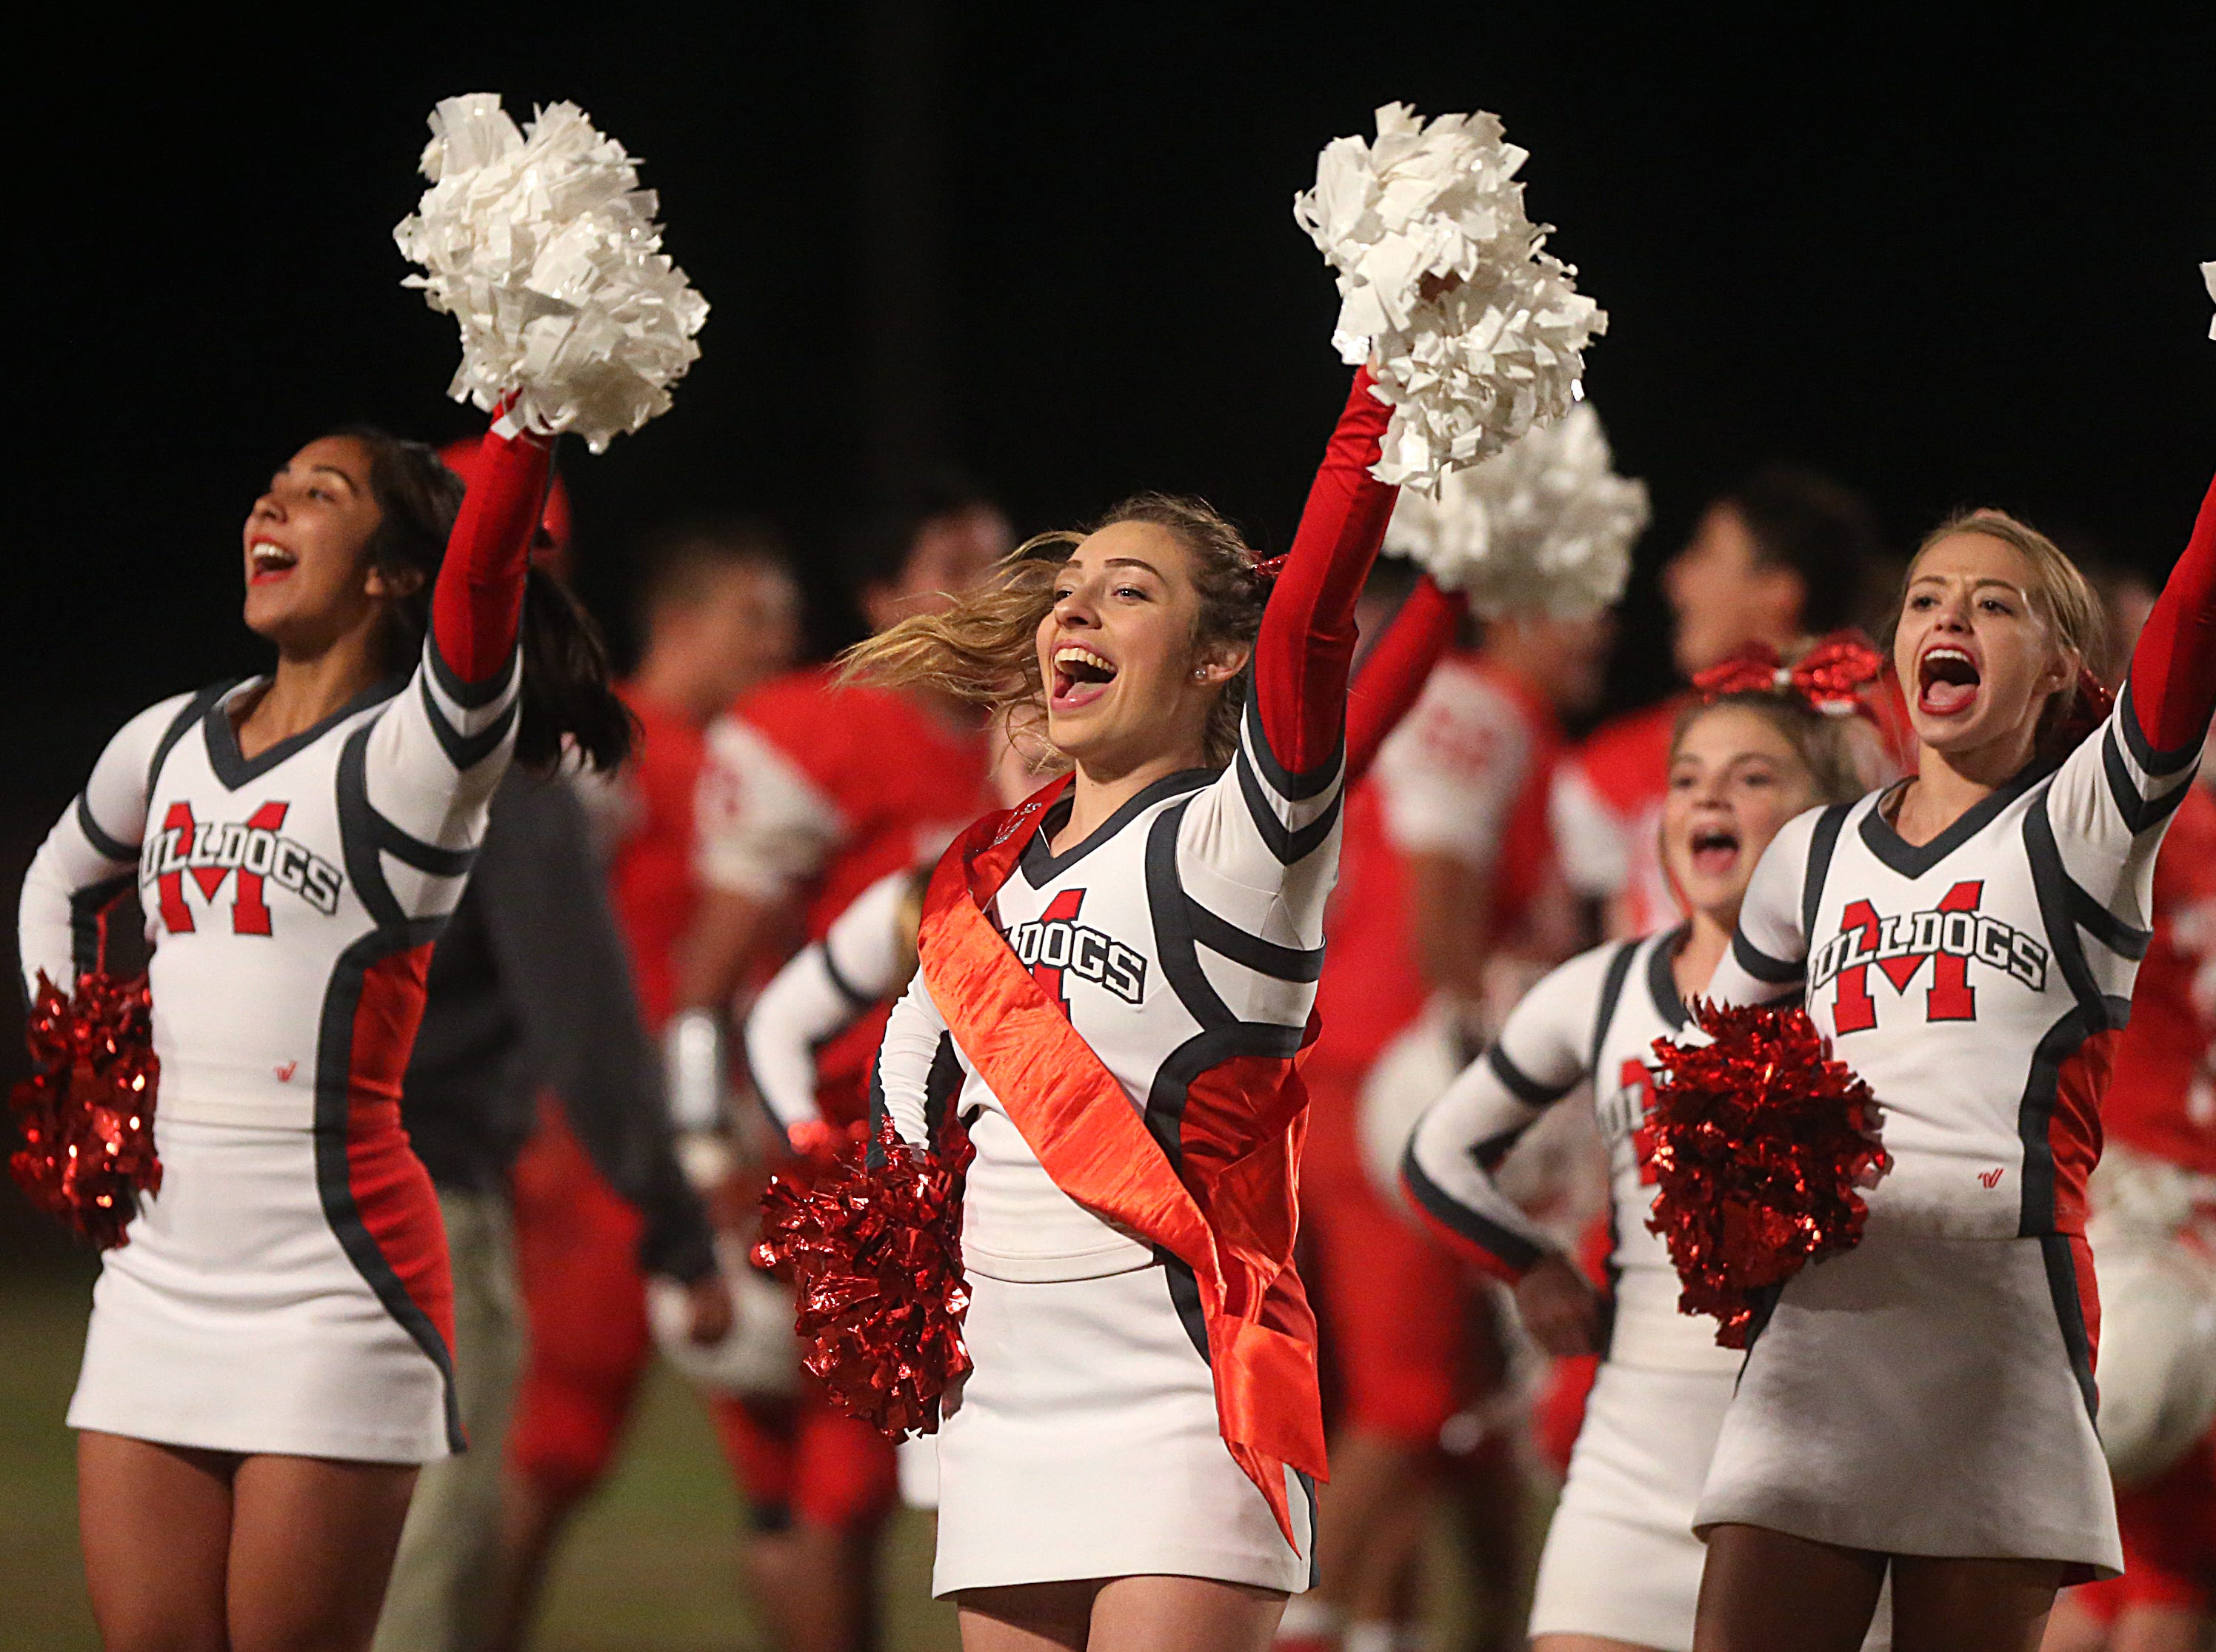 Miles' cheerleaders celebrate Friday, Nov. 2, 2018 after beating Christoval 21 to 20.